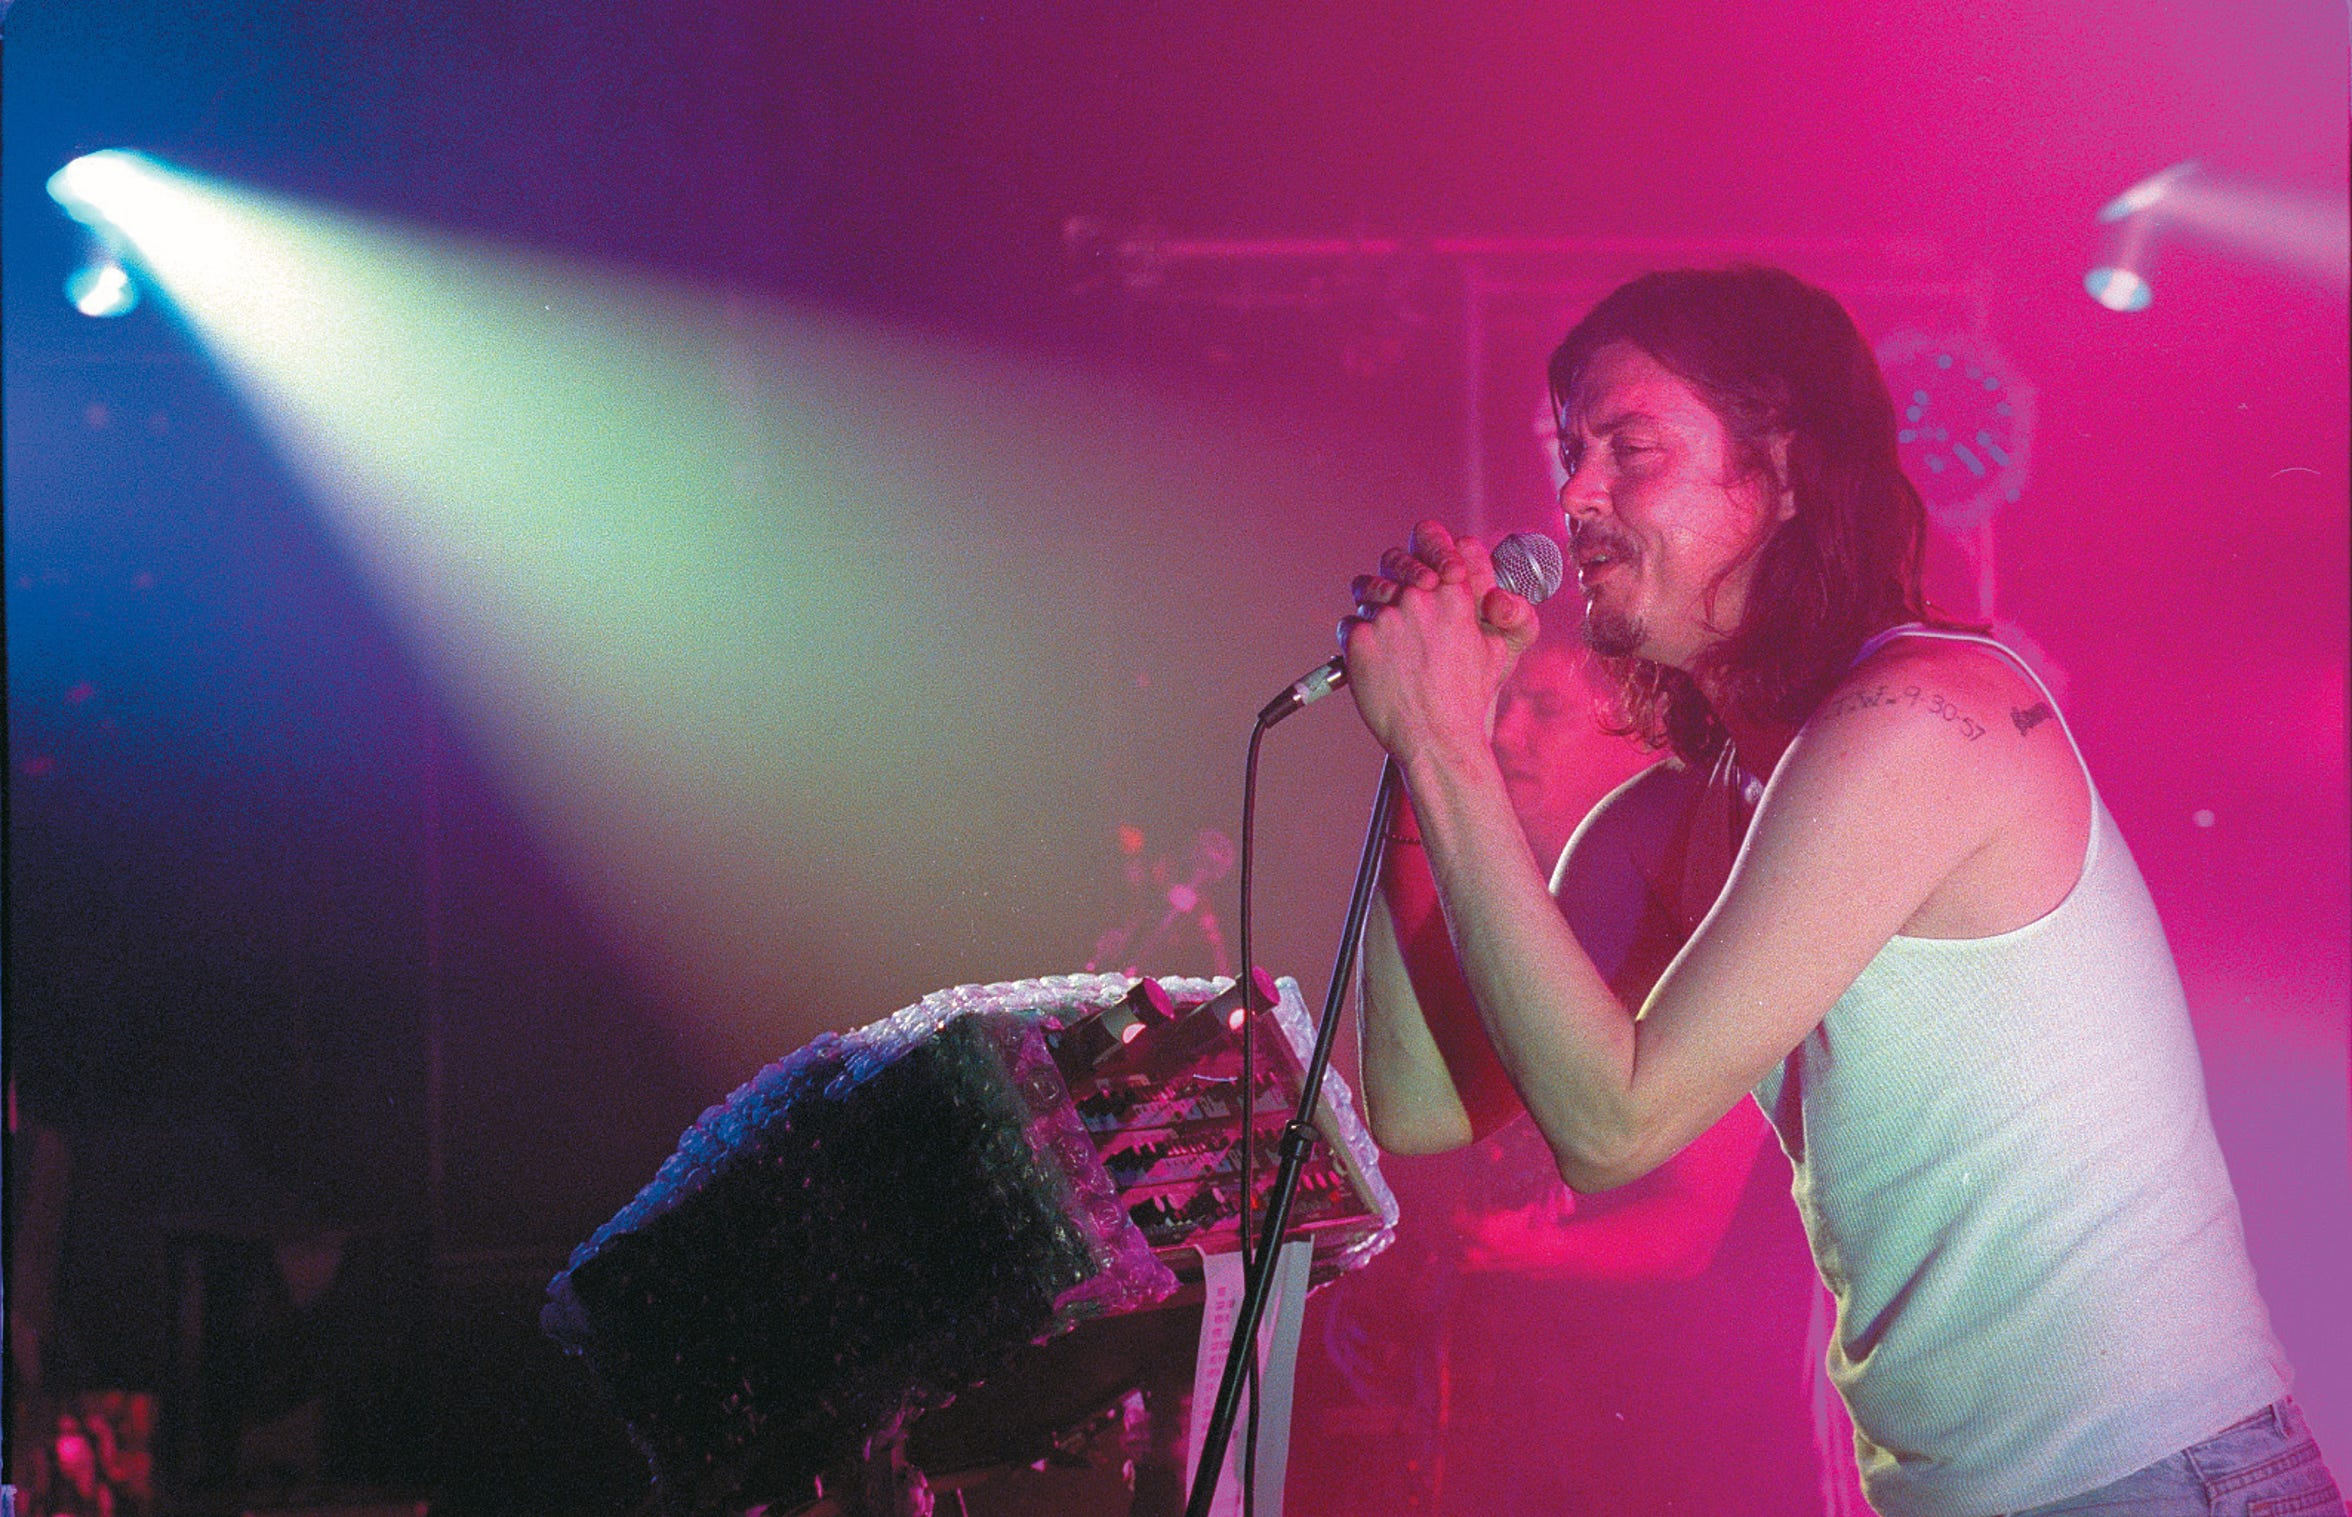 Butthole Surfers' lead singer belts out a song during the Butthole Surfers' concert at Texas Sky Festival Park in Corpus Christi on July 6, 1996.Photo by David Pellerin 7-6-96